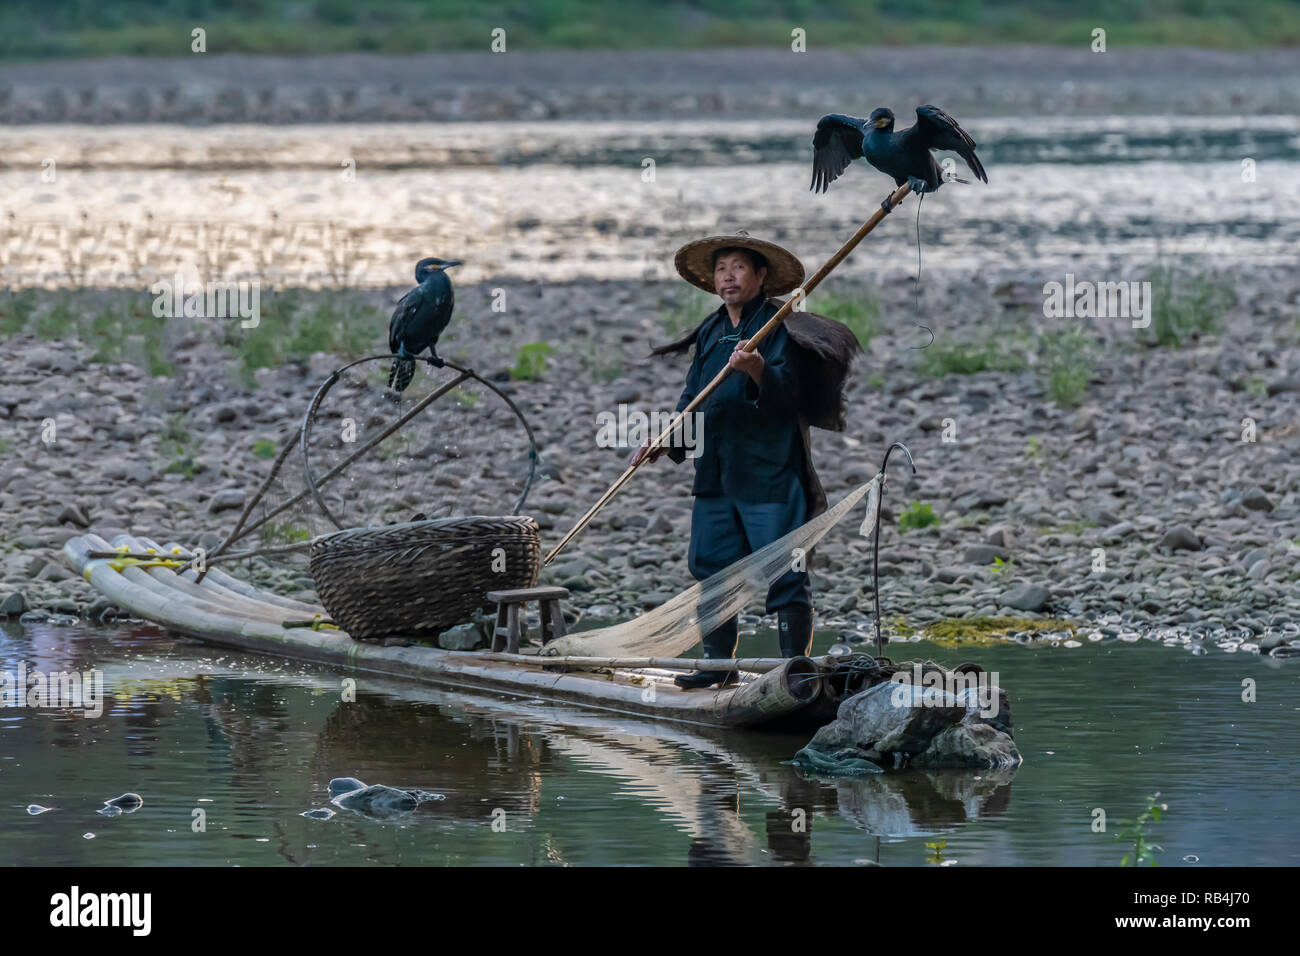 Cormorant Fisherman on the Lijiang River, china - Stock Image